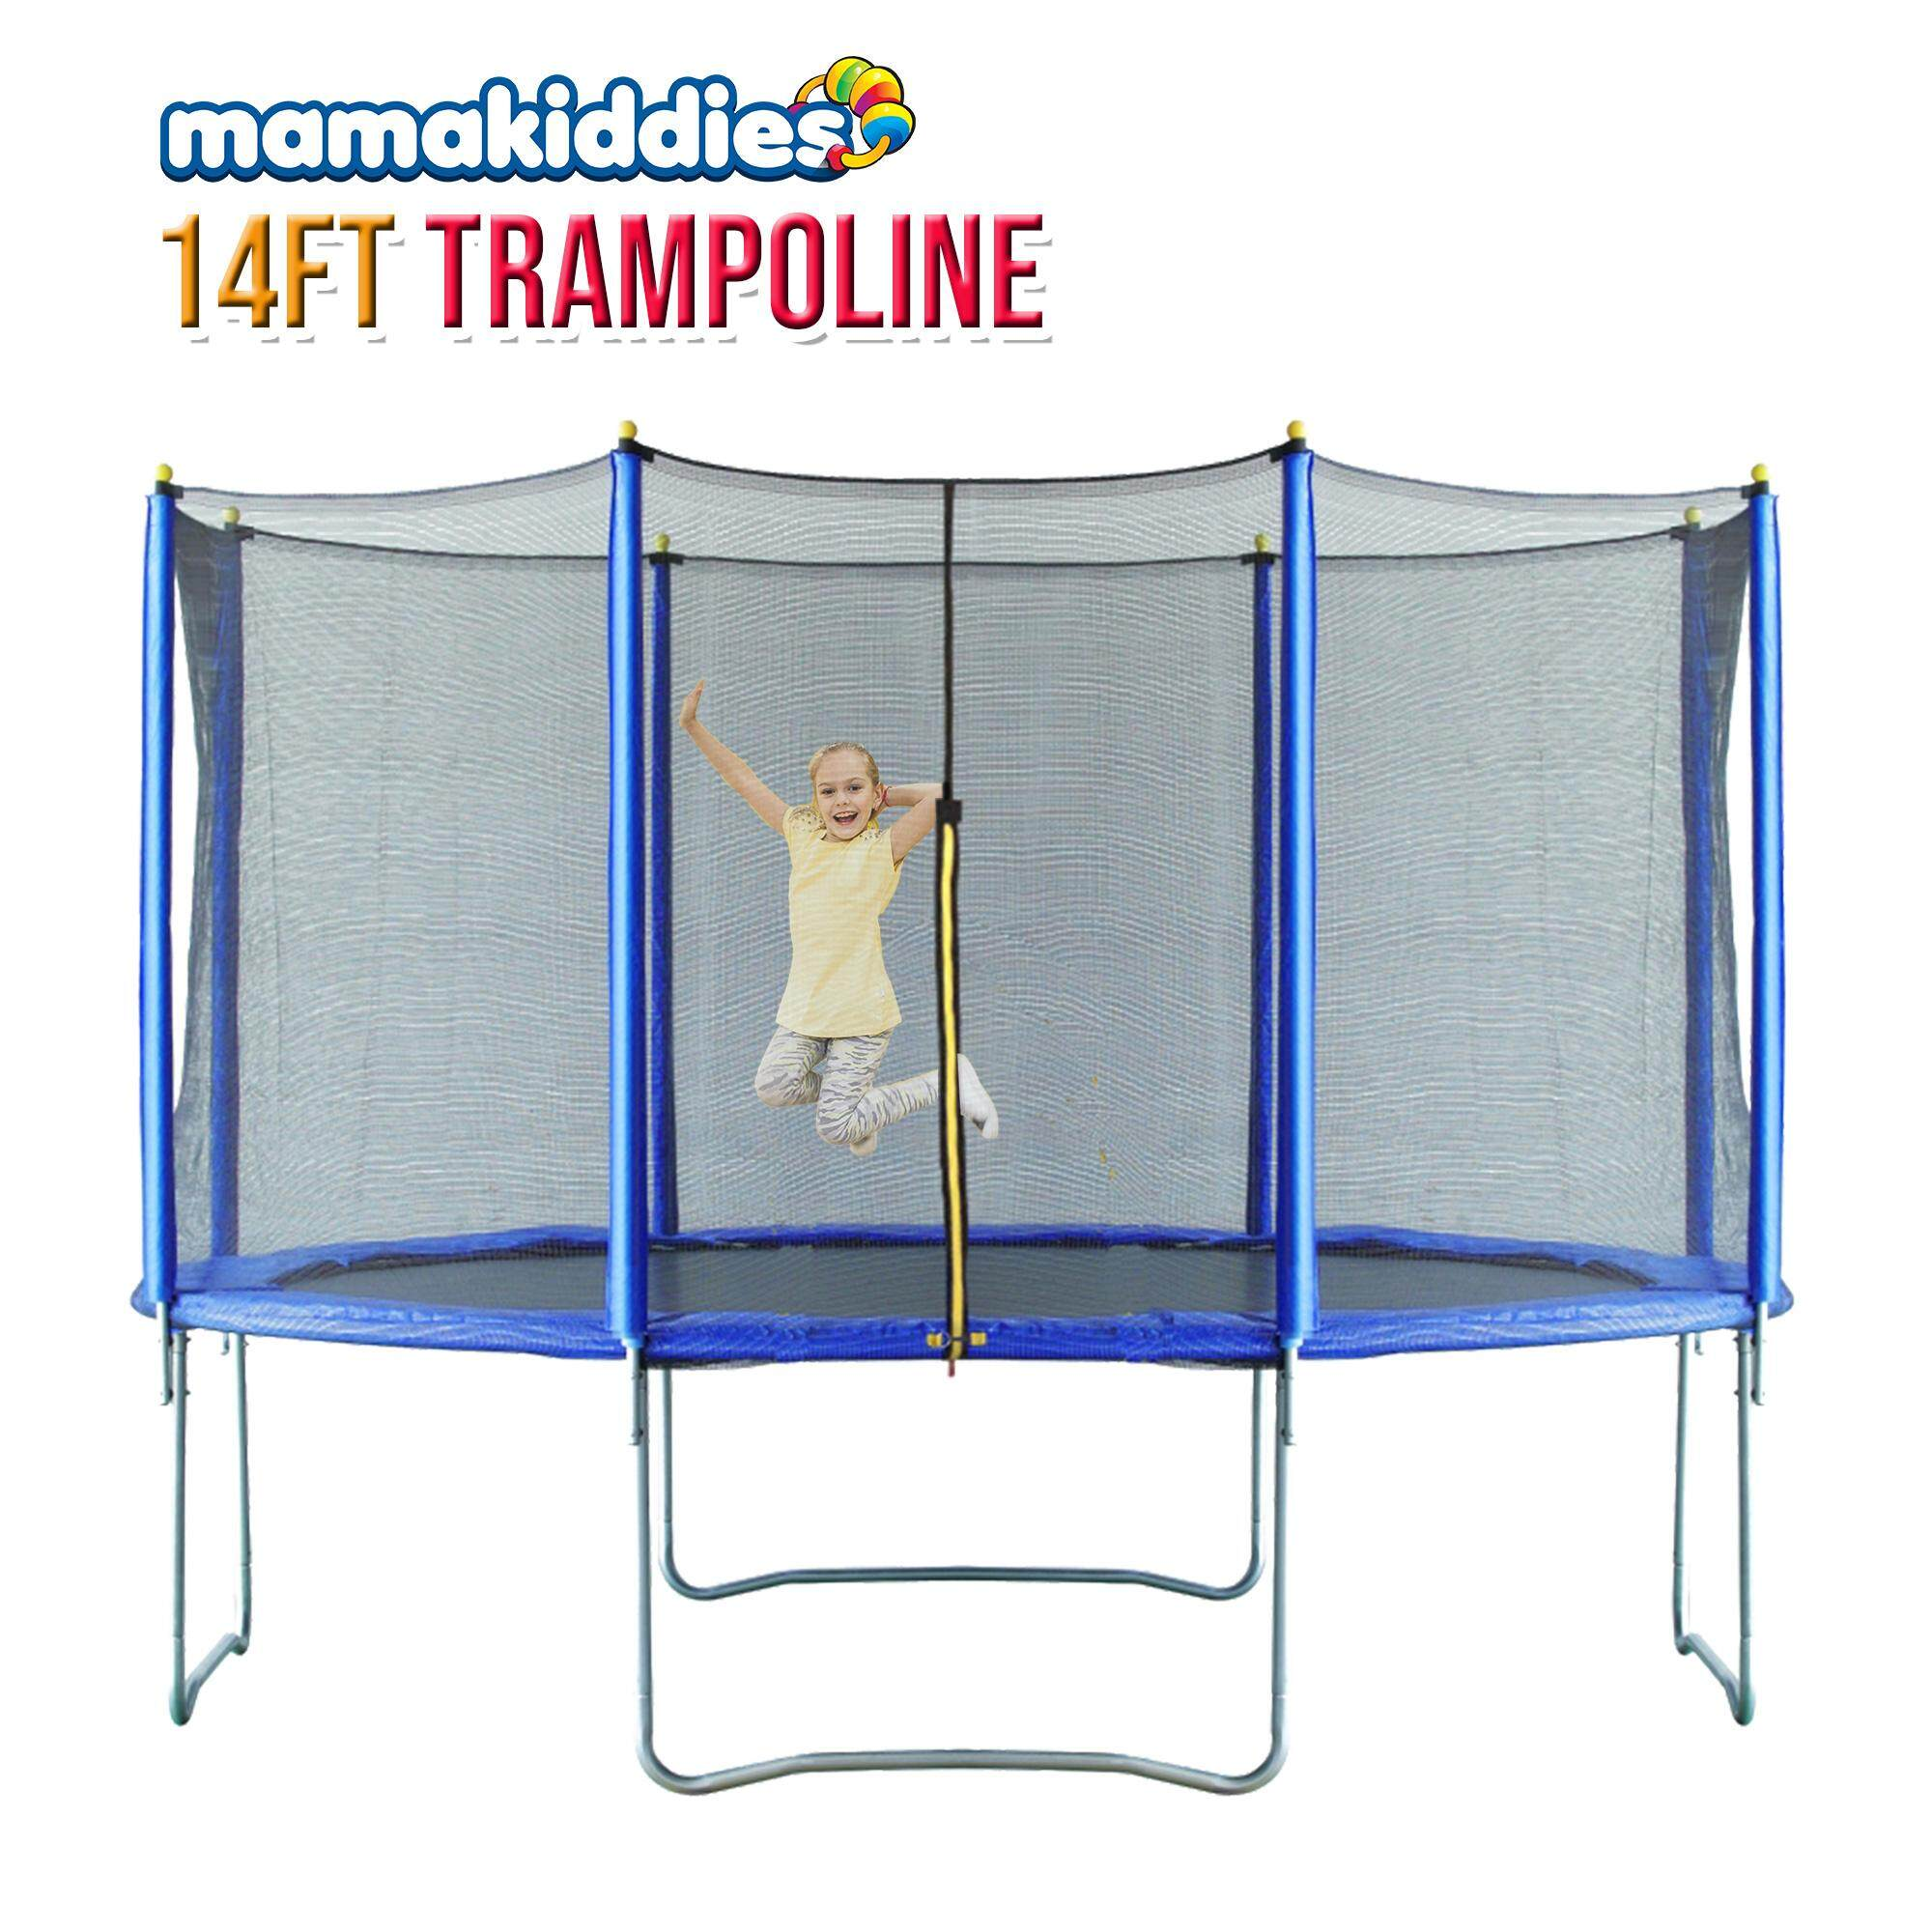 14ft Kids Adult Jumper Trampoline And Enclosure With Ladder Set Blue By Mamakiddies.